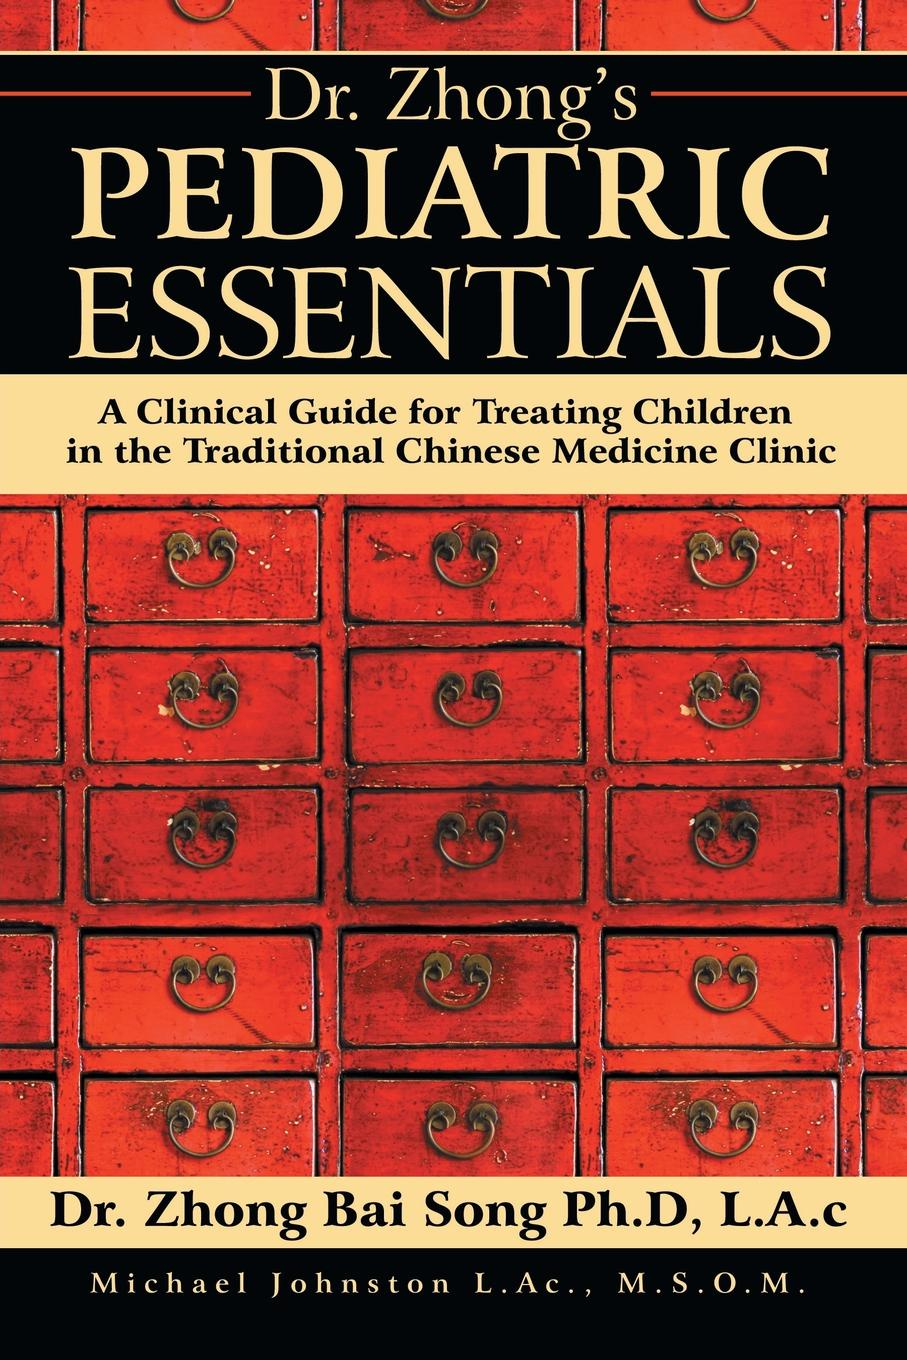 LAc Dr. Zhong Bai Song PhD Dr. Zhong's Pediatric Essentials. A Clinical Guide for Treating Children in the Traditional Chinese Medicine Clinic practical traditional chinese medicine very precious language chinese